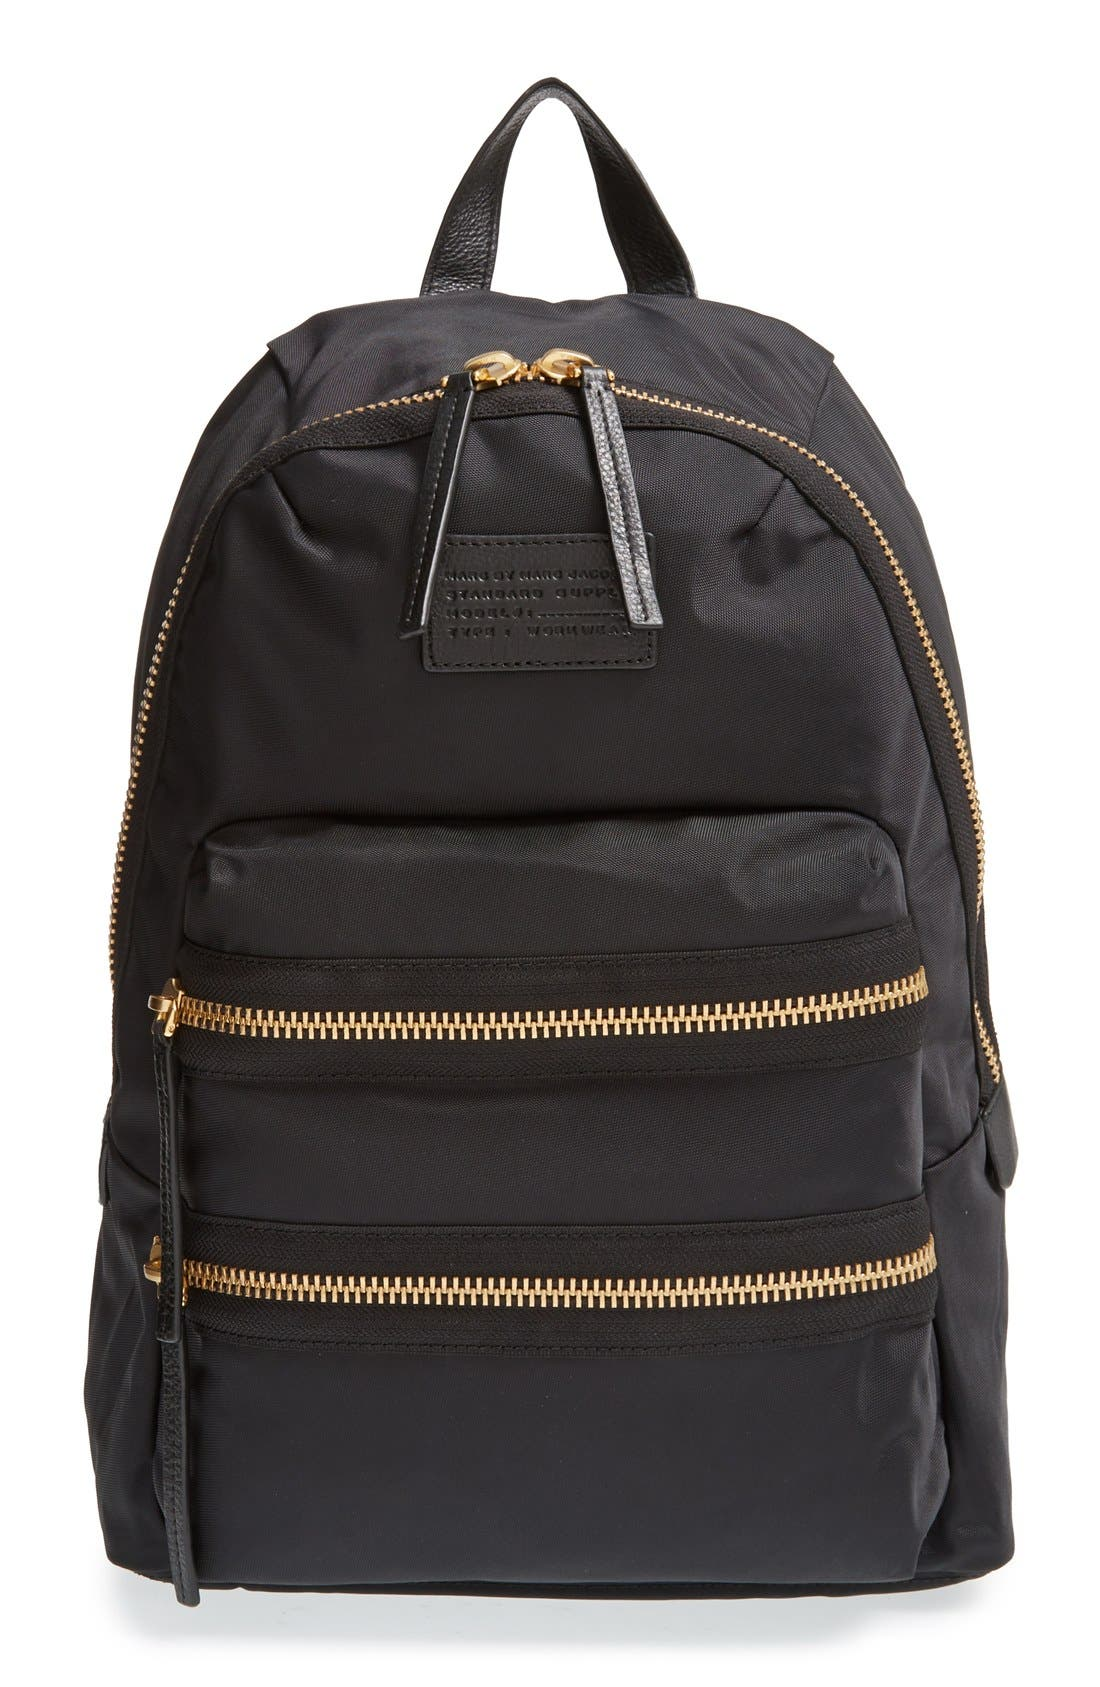 Main Image - MARC BY MARC JACOBS 'Domo Arigato' Backpack